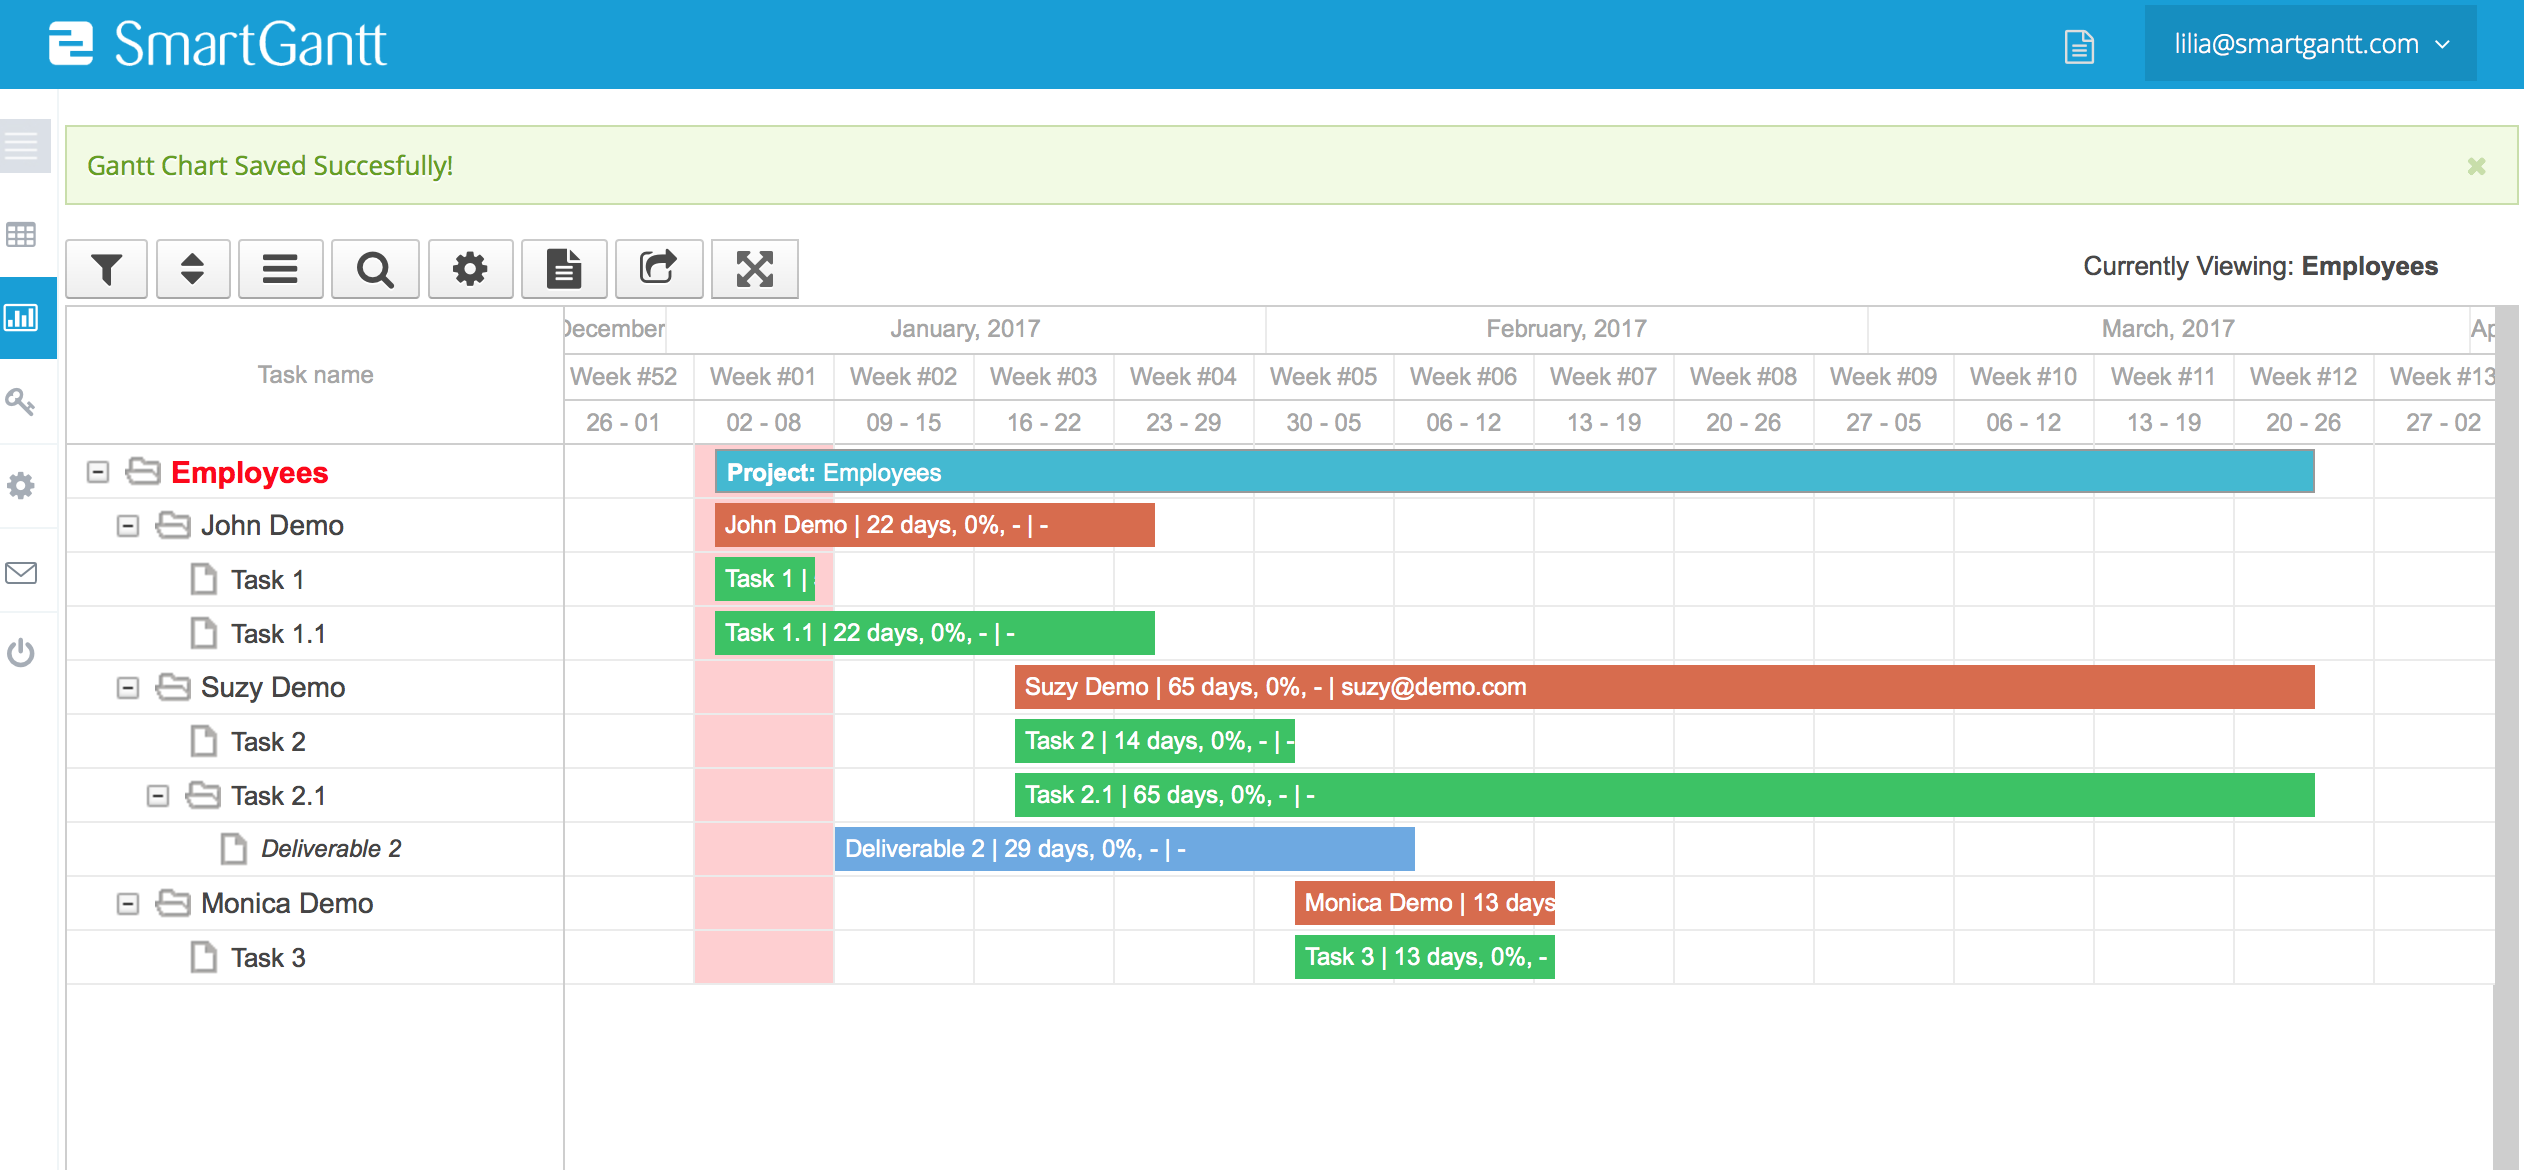 How to create an employee chart - SmartGantt